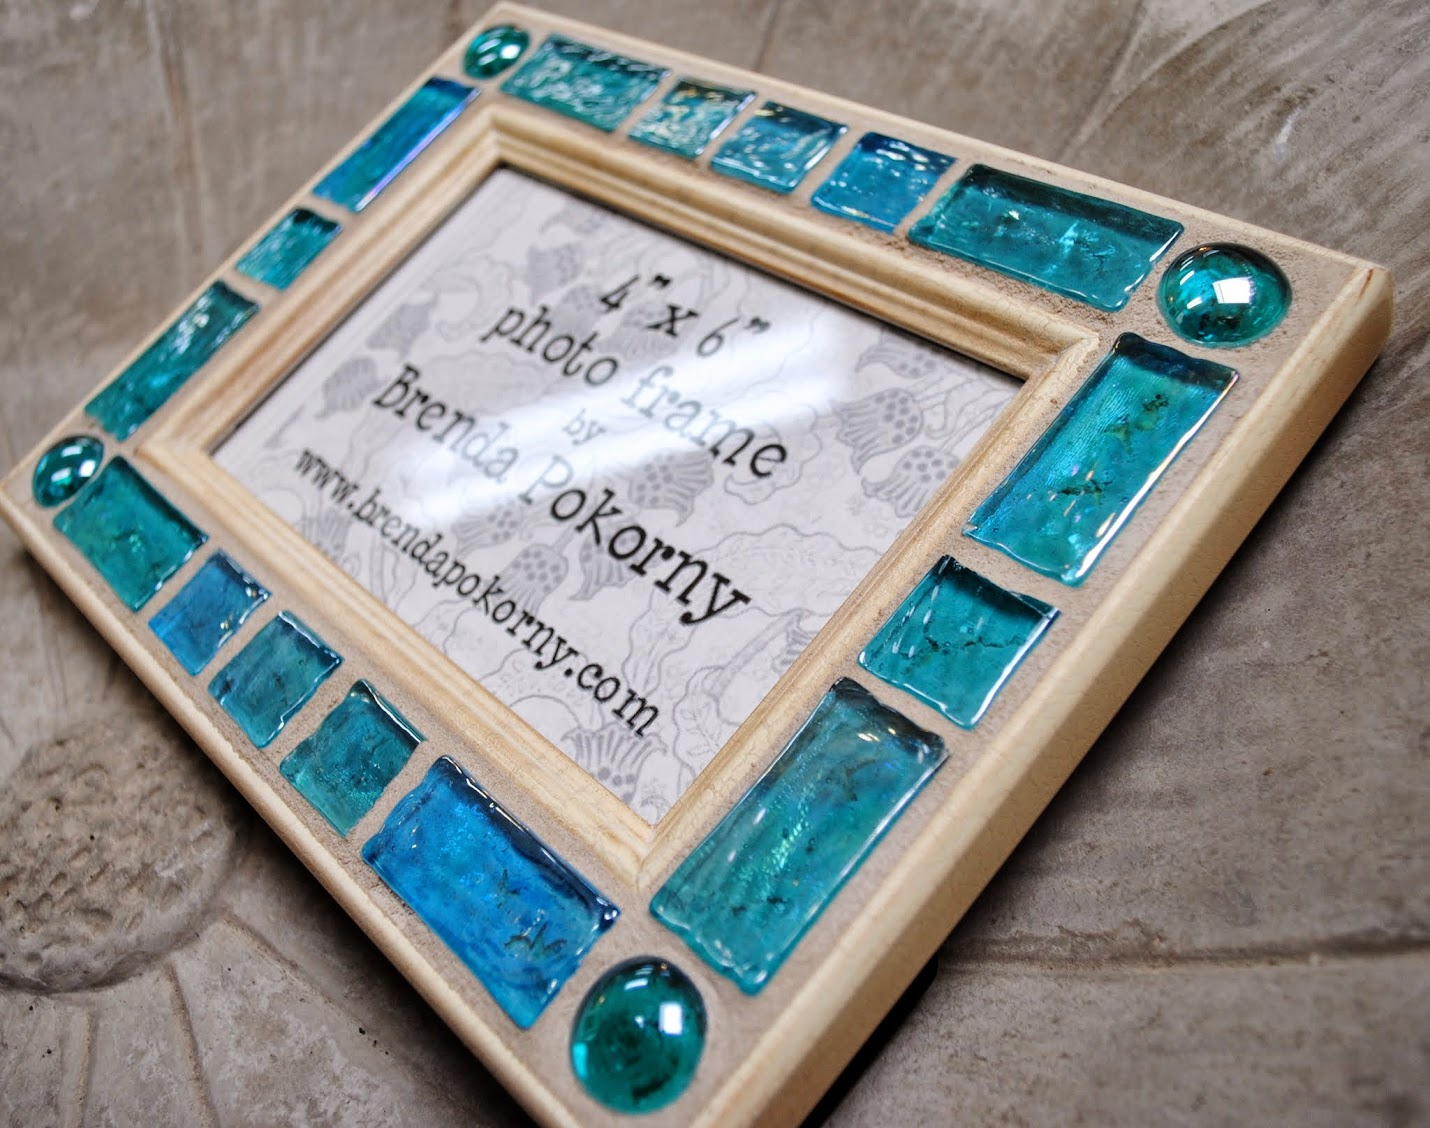 Cool Water Blocks 4 x 6 Mosaic Photo Frame MOF1377